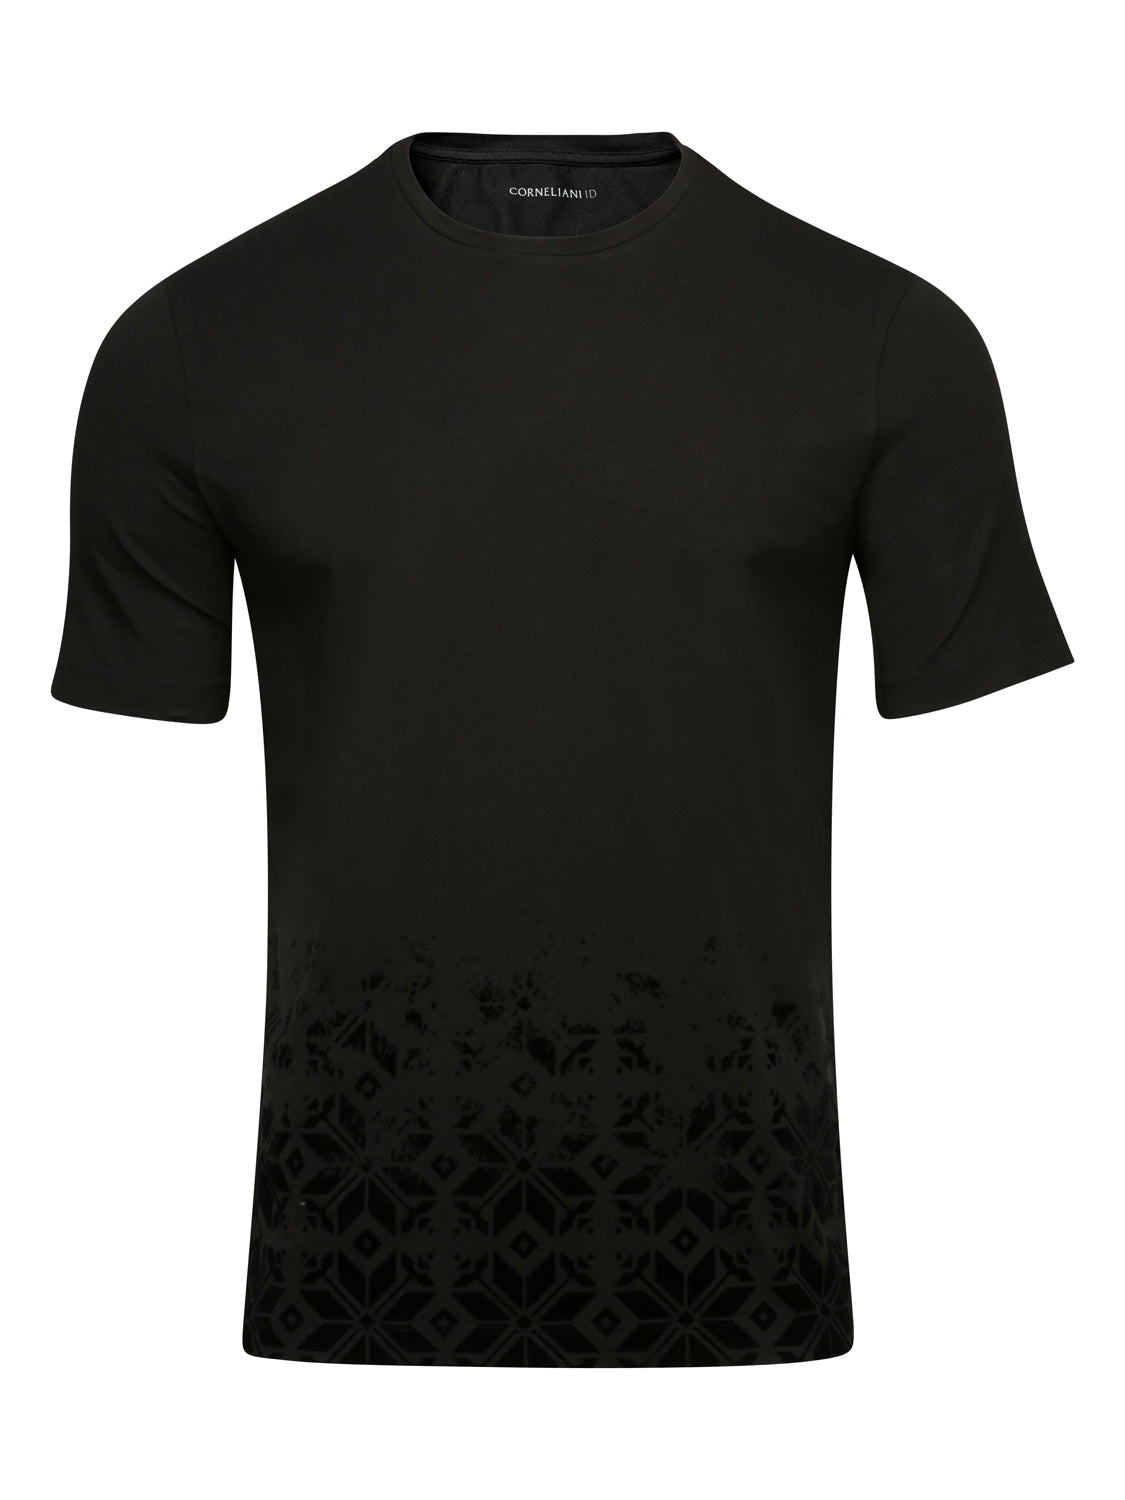 Corneliani Frostbite T-Shirt (Black) - Union 22